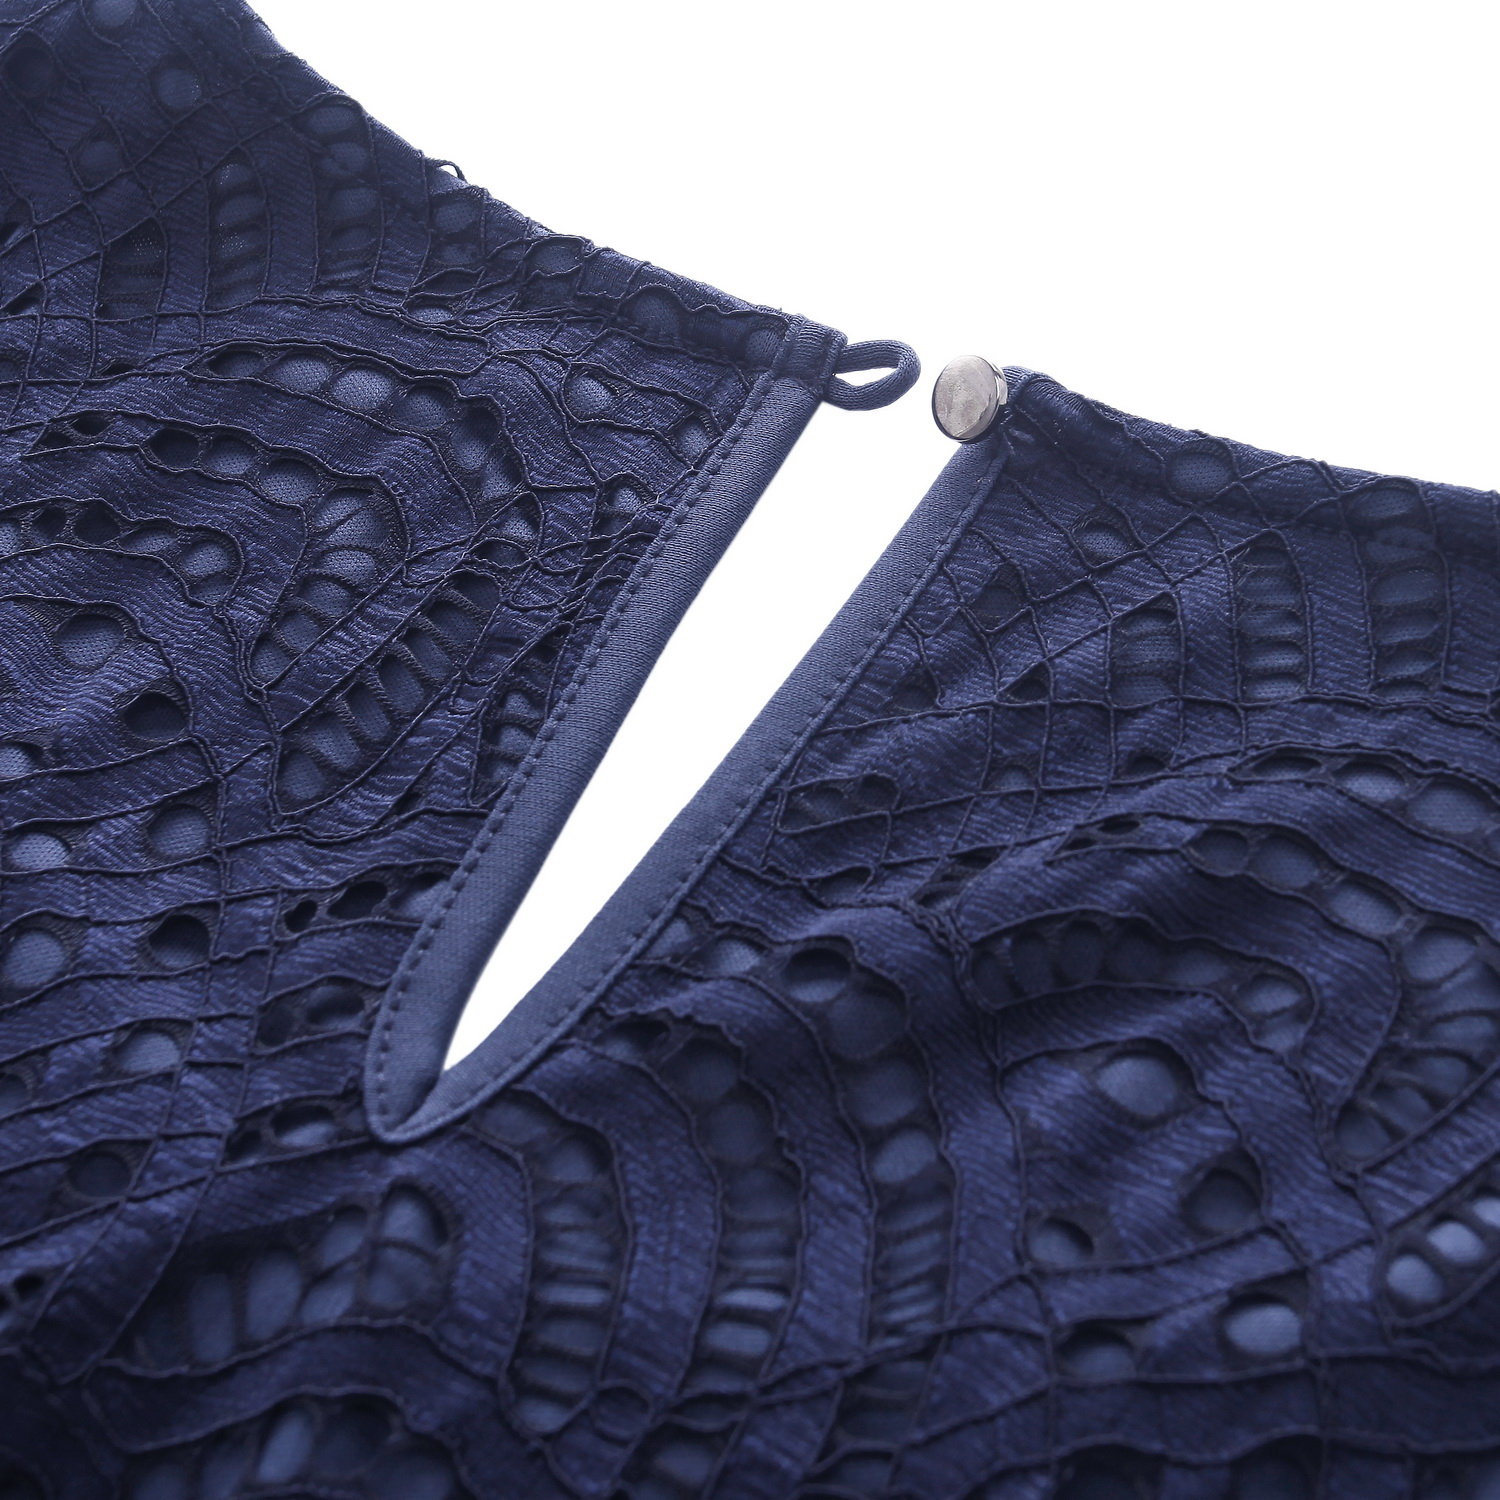 Chicwe Women s Plus Size Smart Scalloped Lace Top Tunic Work and Casual  Blouse Large Size Big Size 1X 4X Navy-in Blouses   Shirts from Women s  Clothing on ... ea97a3a997e9